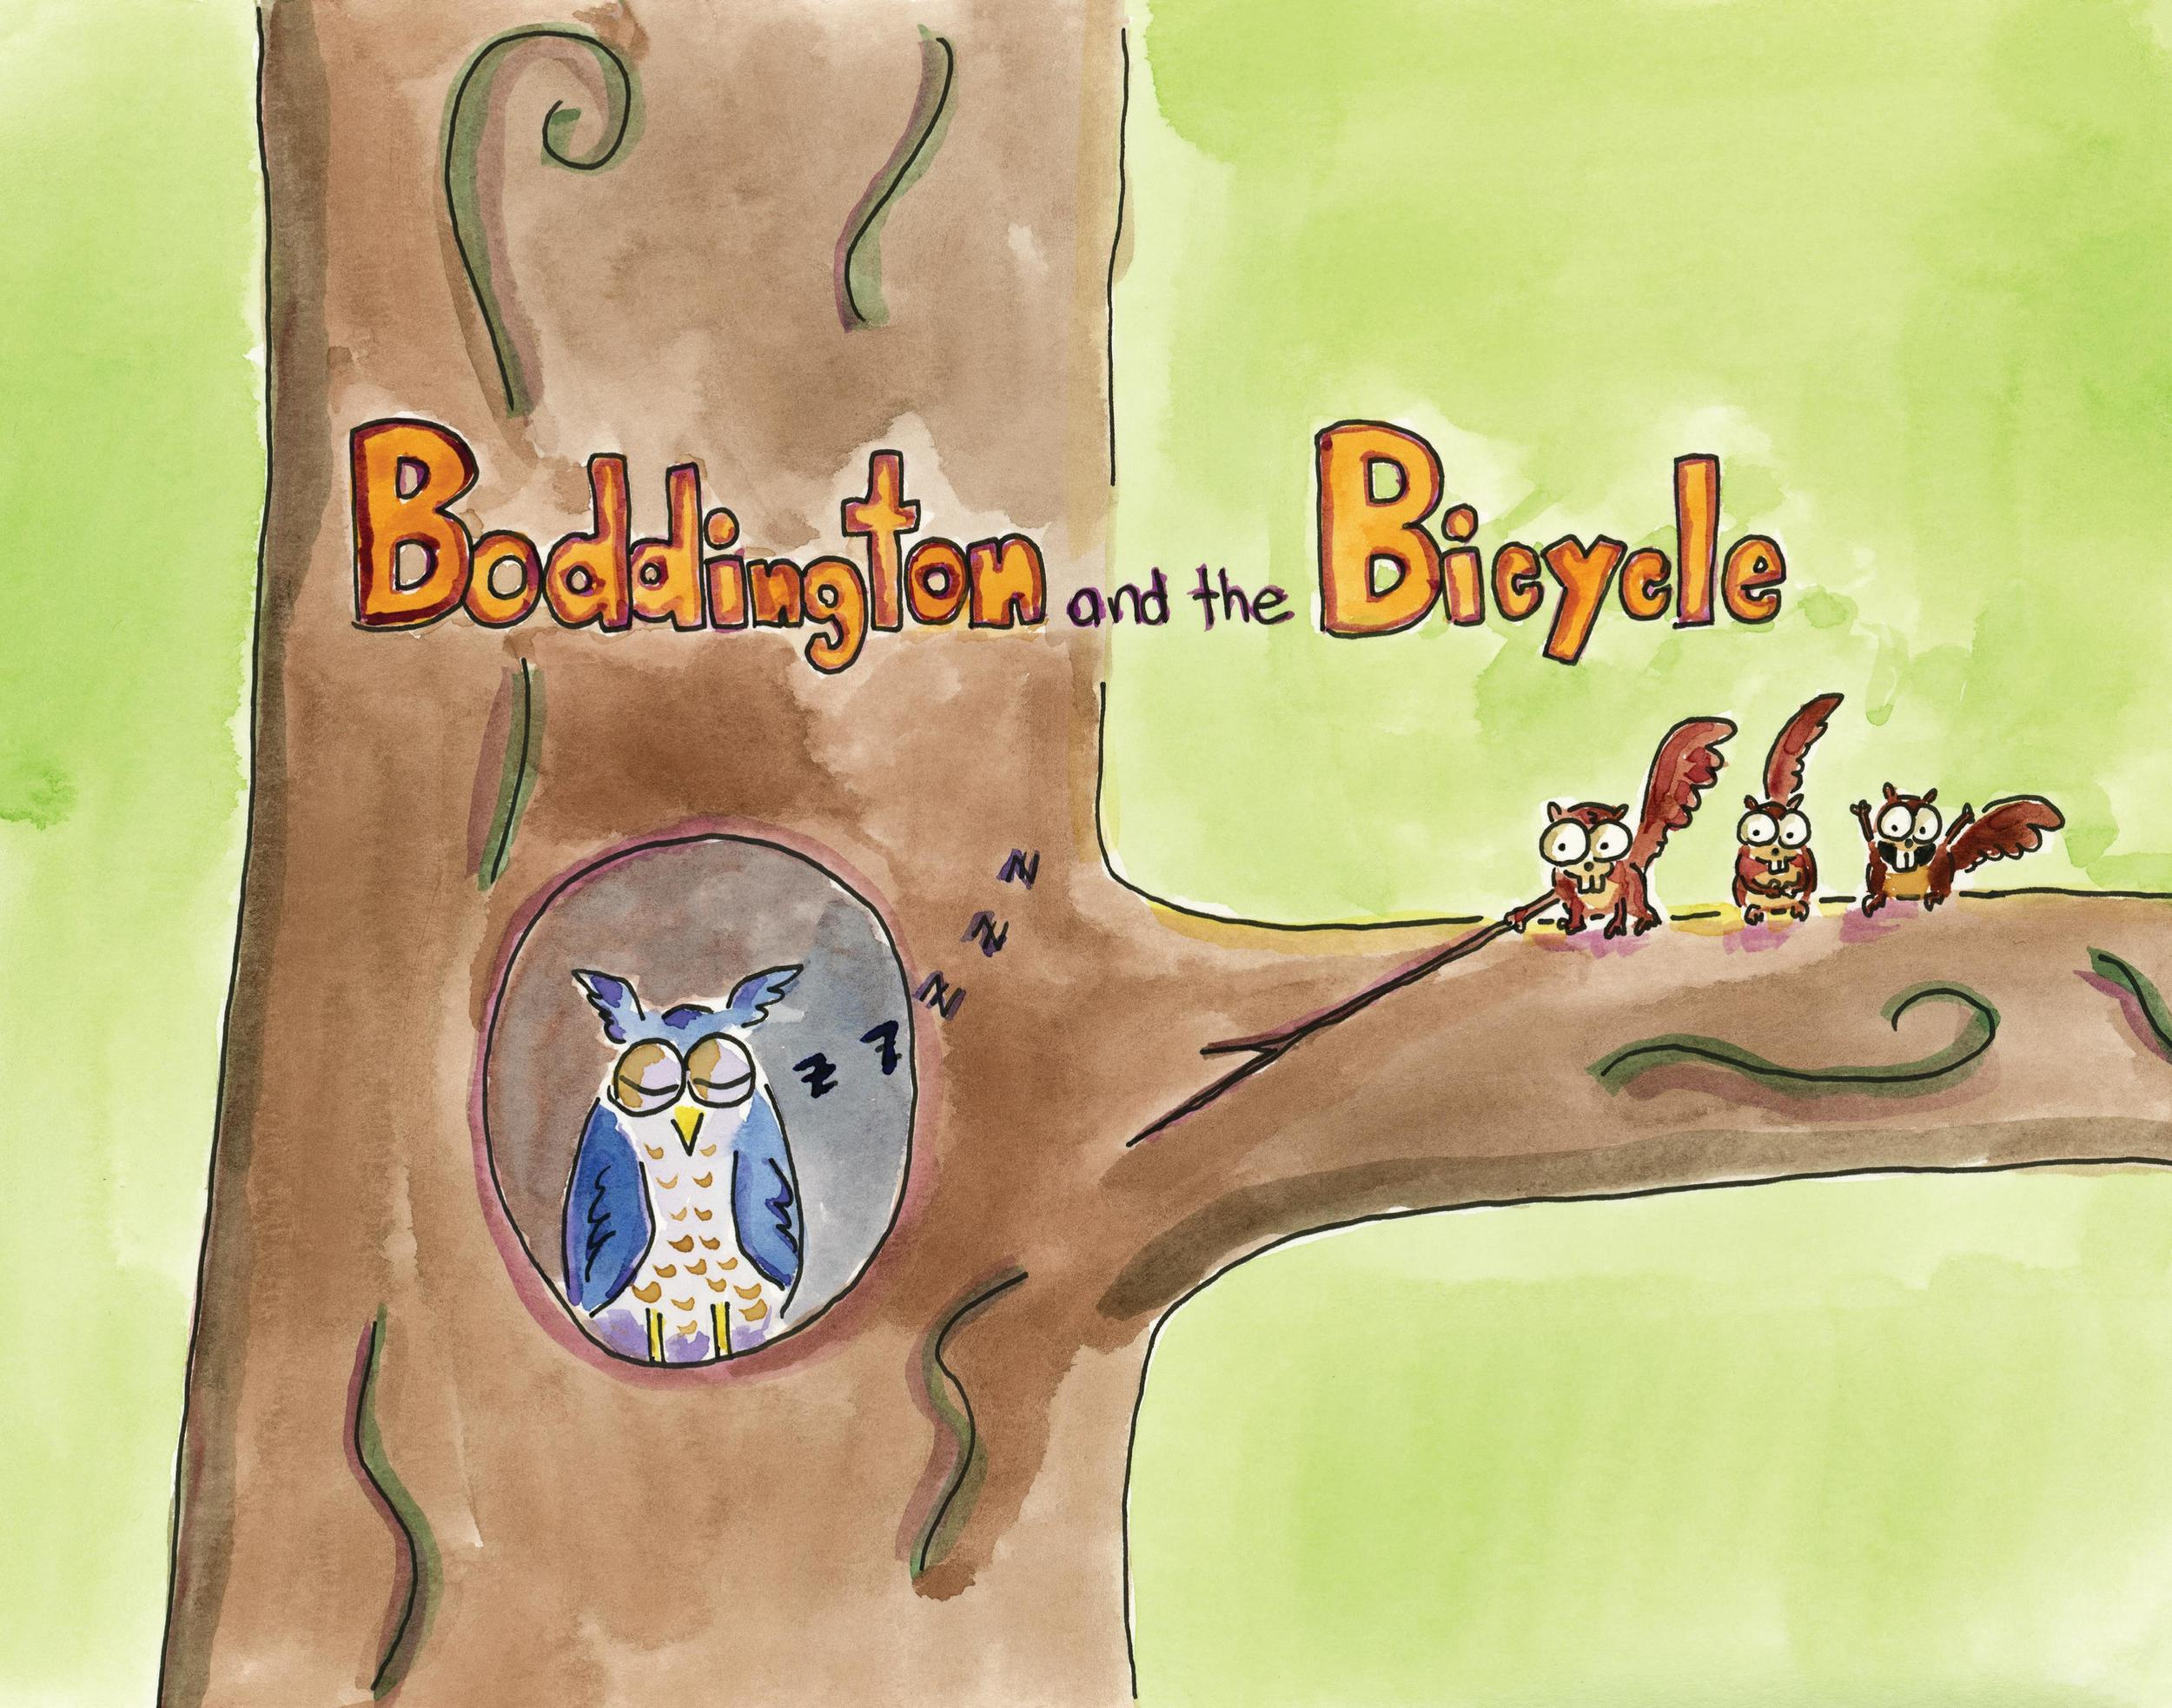 Book 3 - Boddington and the Bicycle